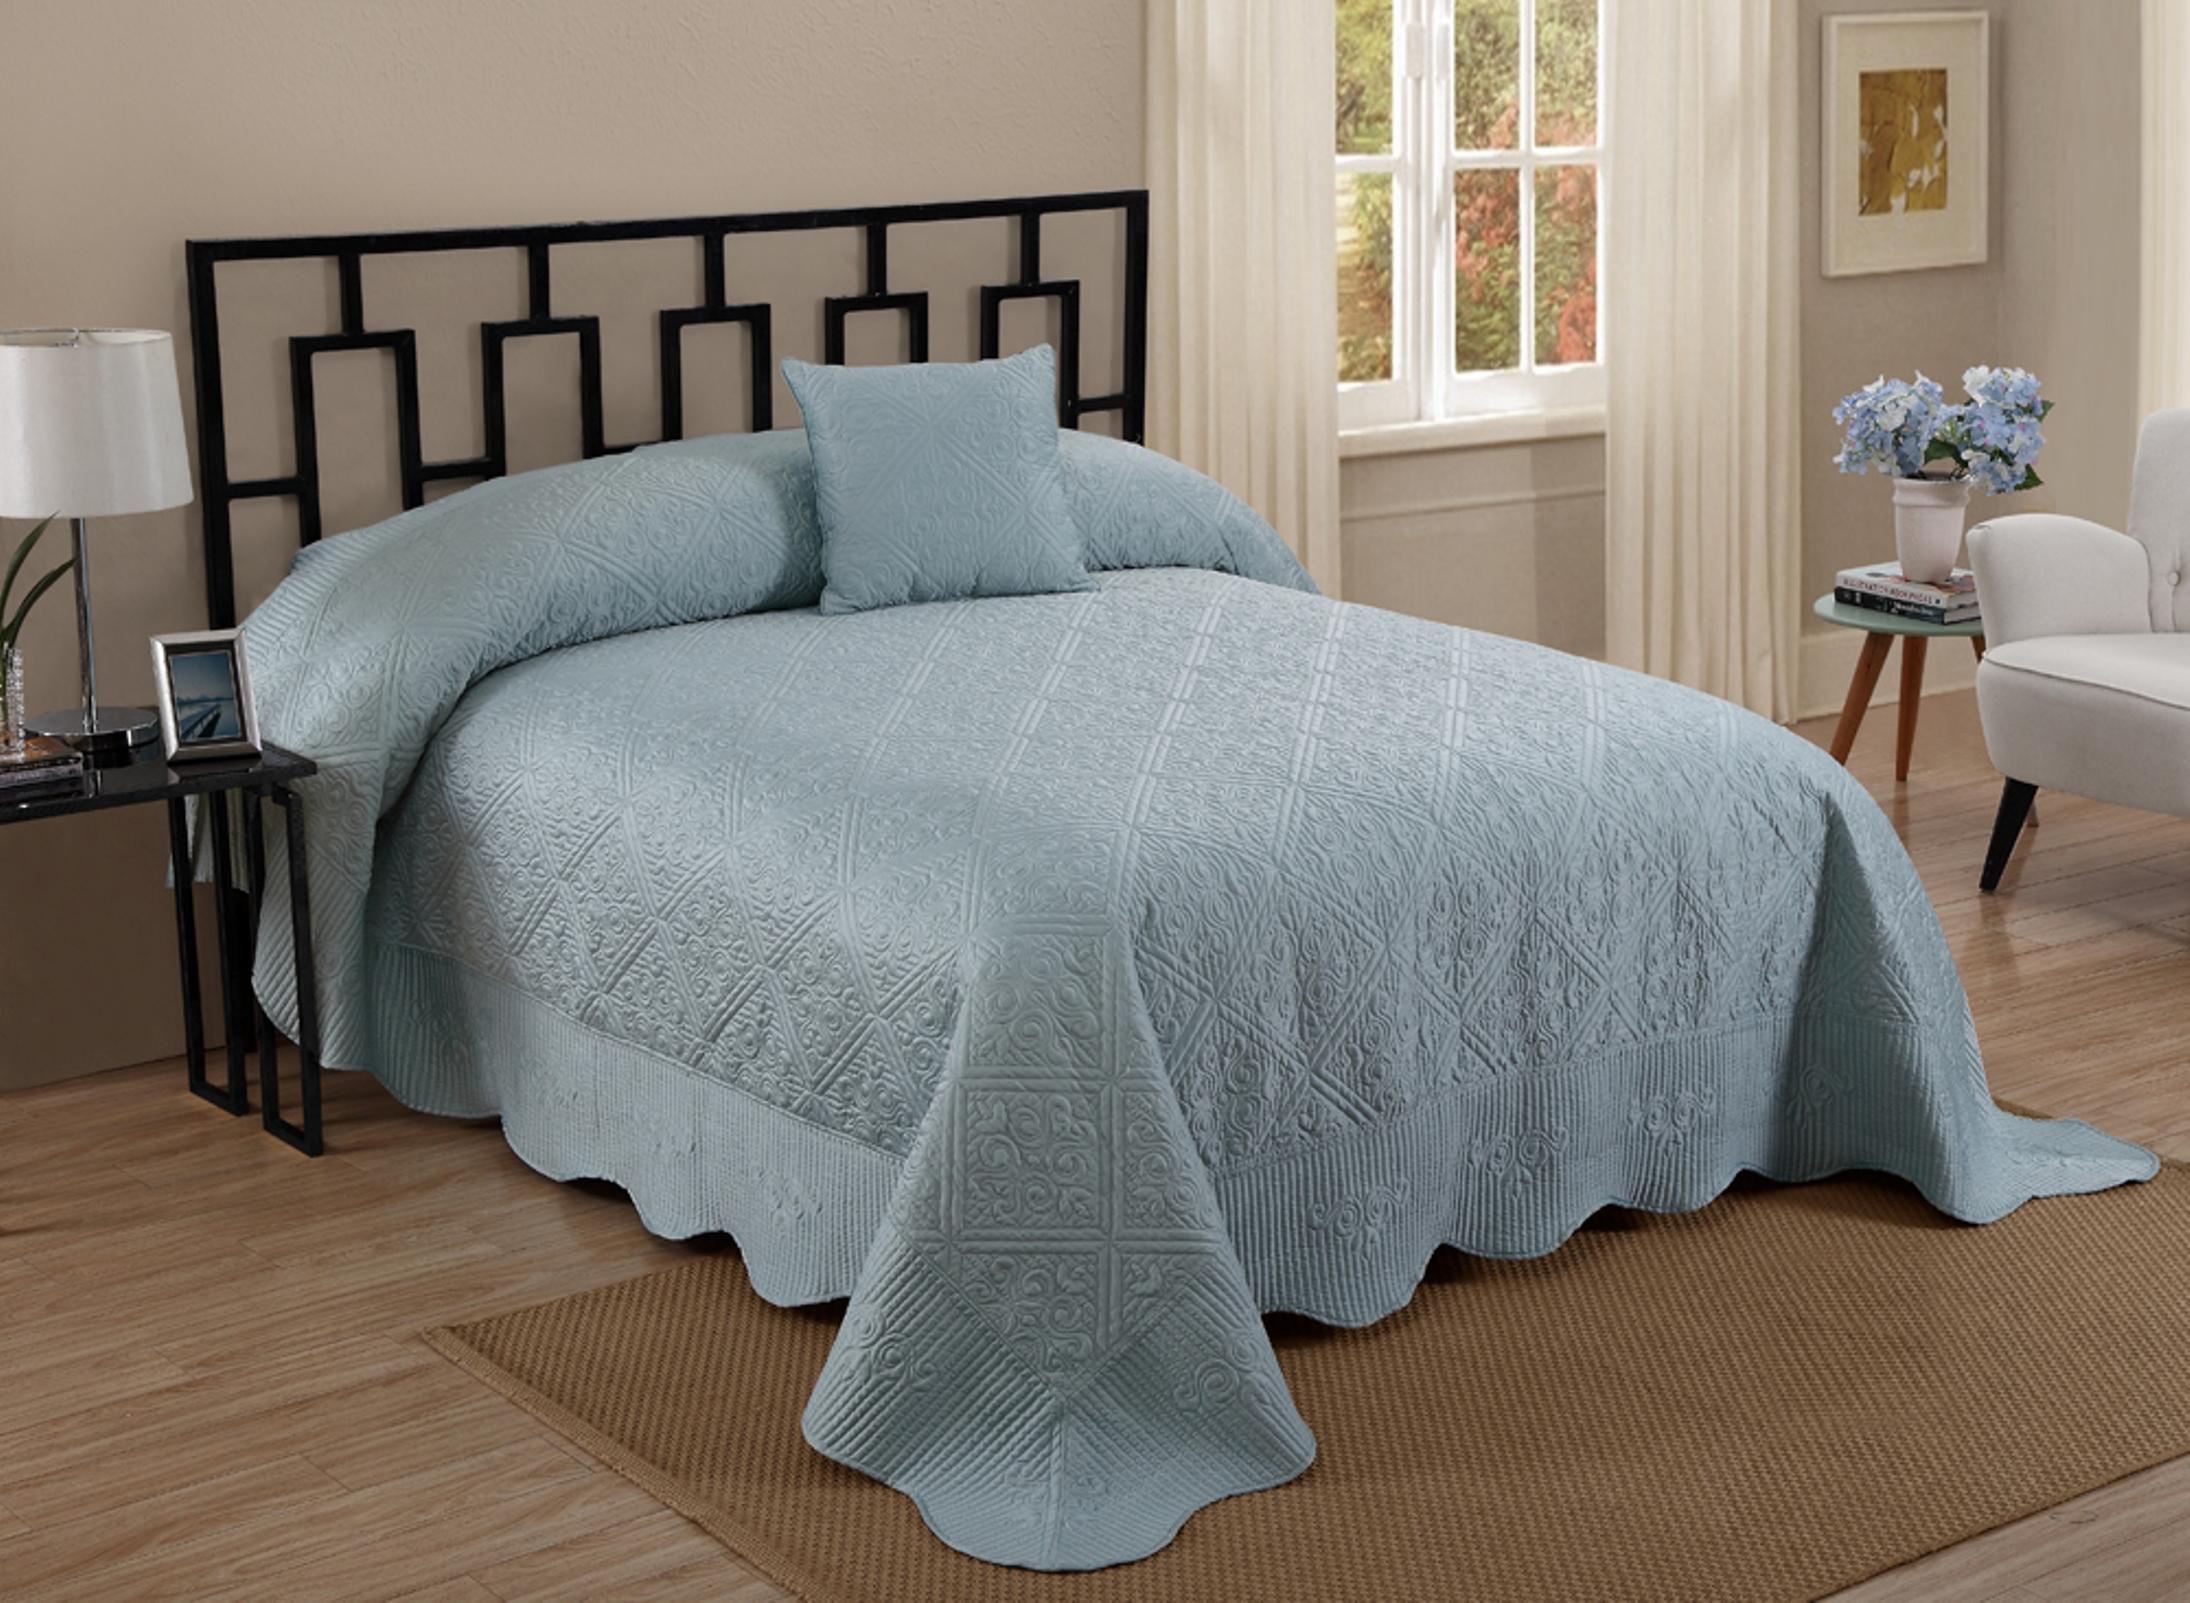 Sears Comforter Sets | Ross Comforters | Sears Bedspreads Queen